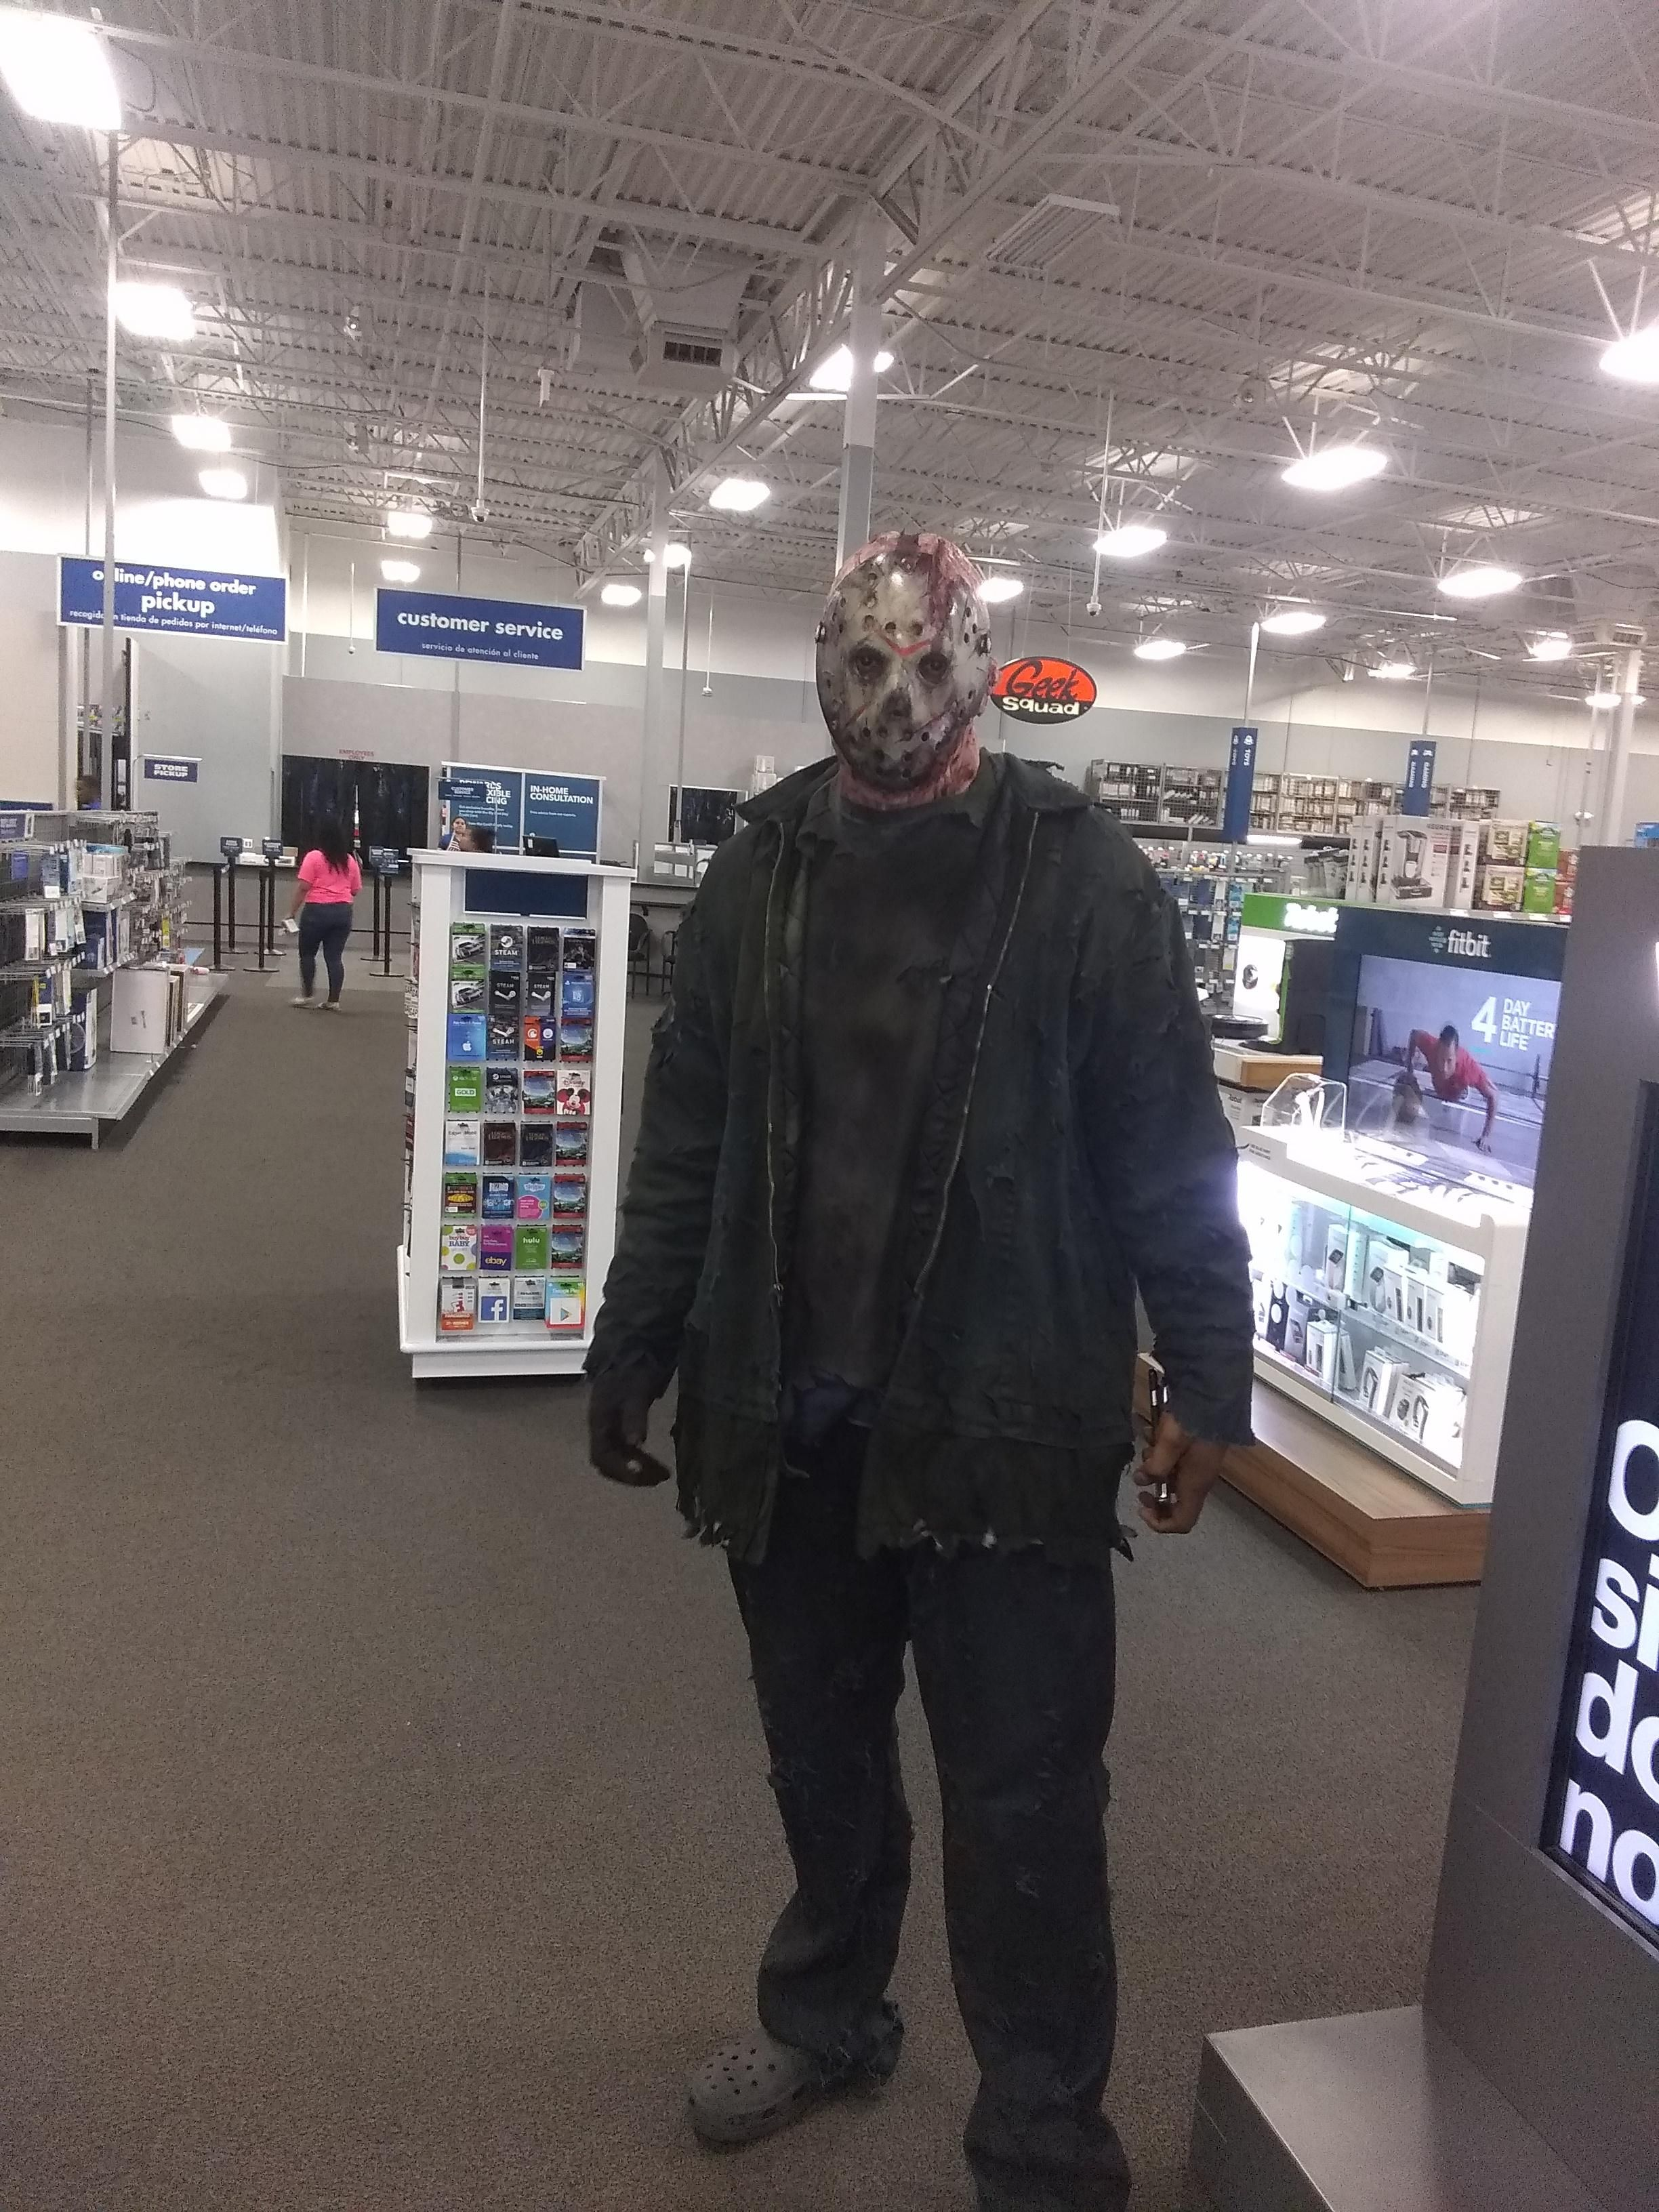 I work at best buy, almost shit my pants when jason came up behind